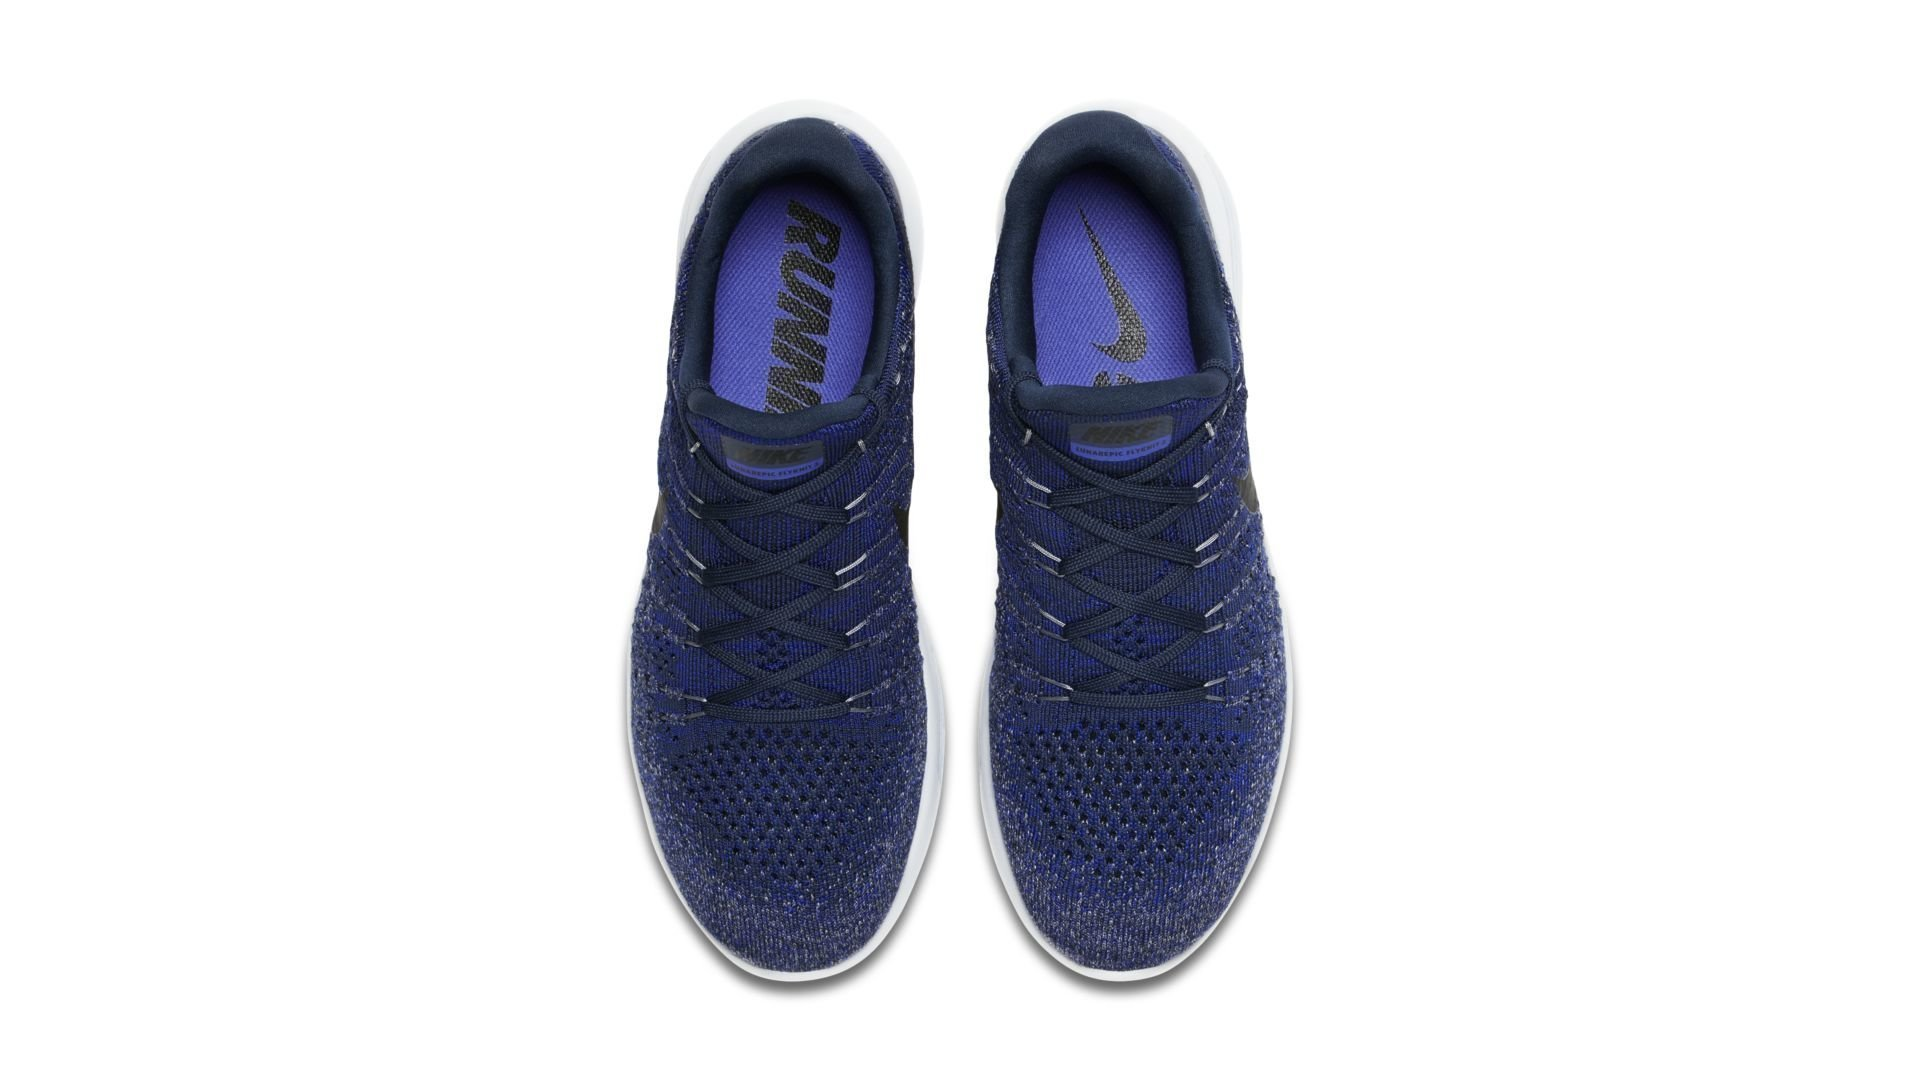 Nike Lunarepic Low Flyknit 2 College Navy (863779-406)